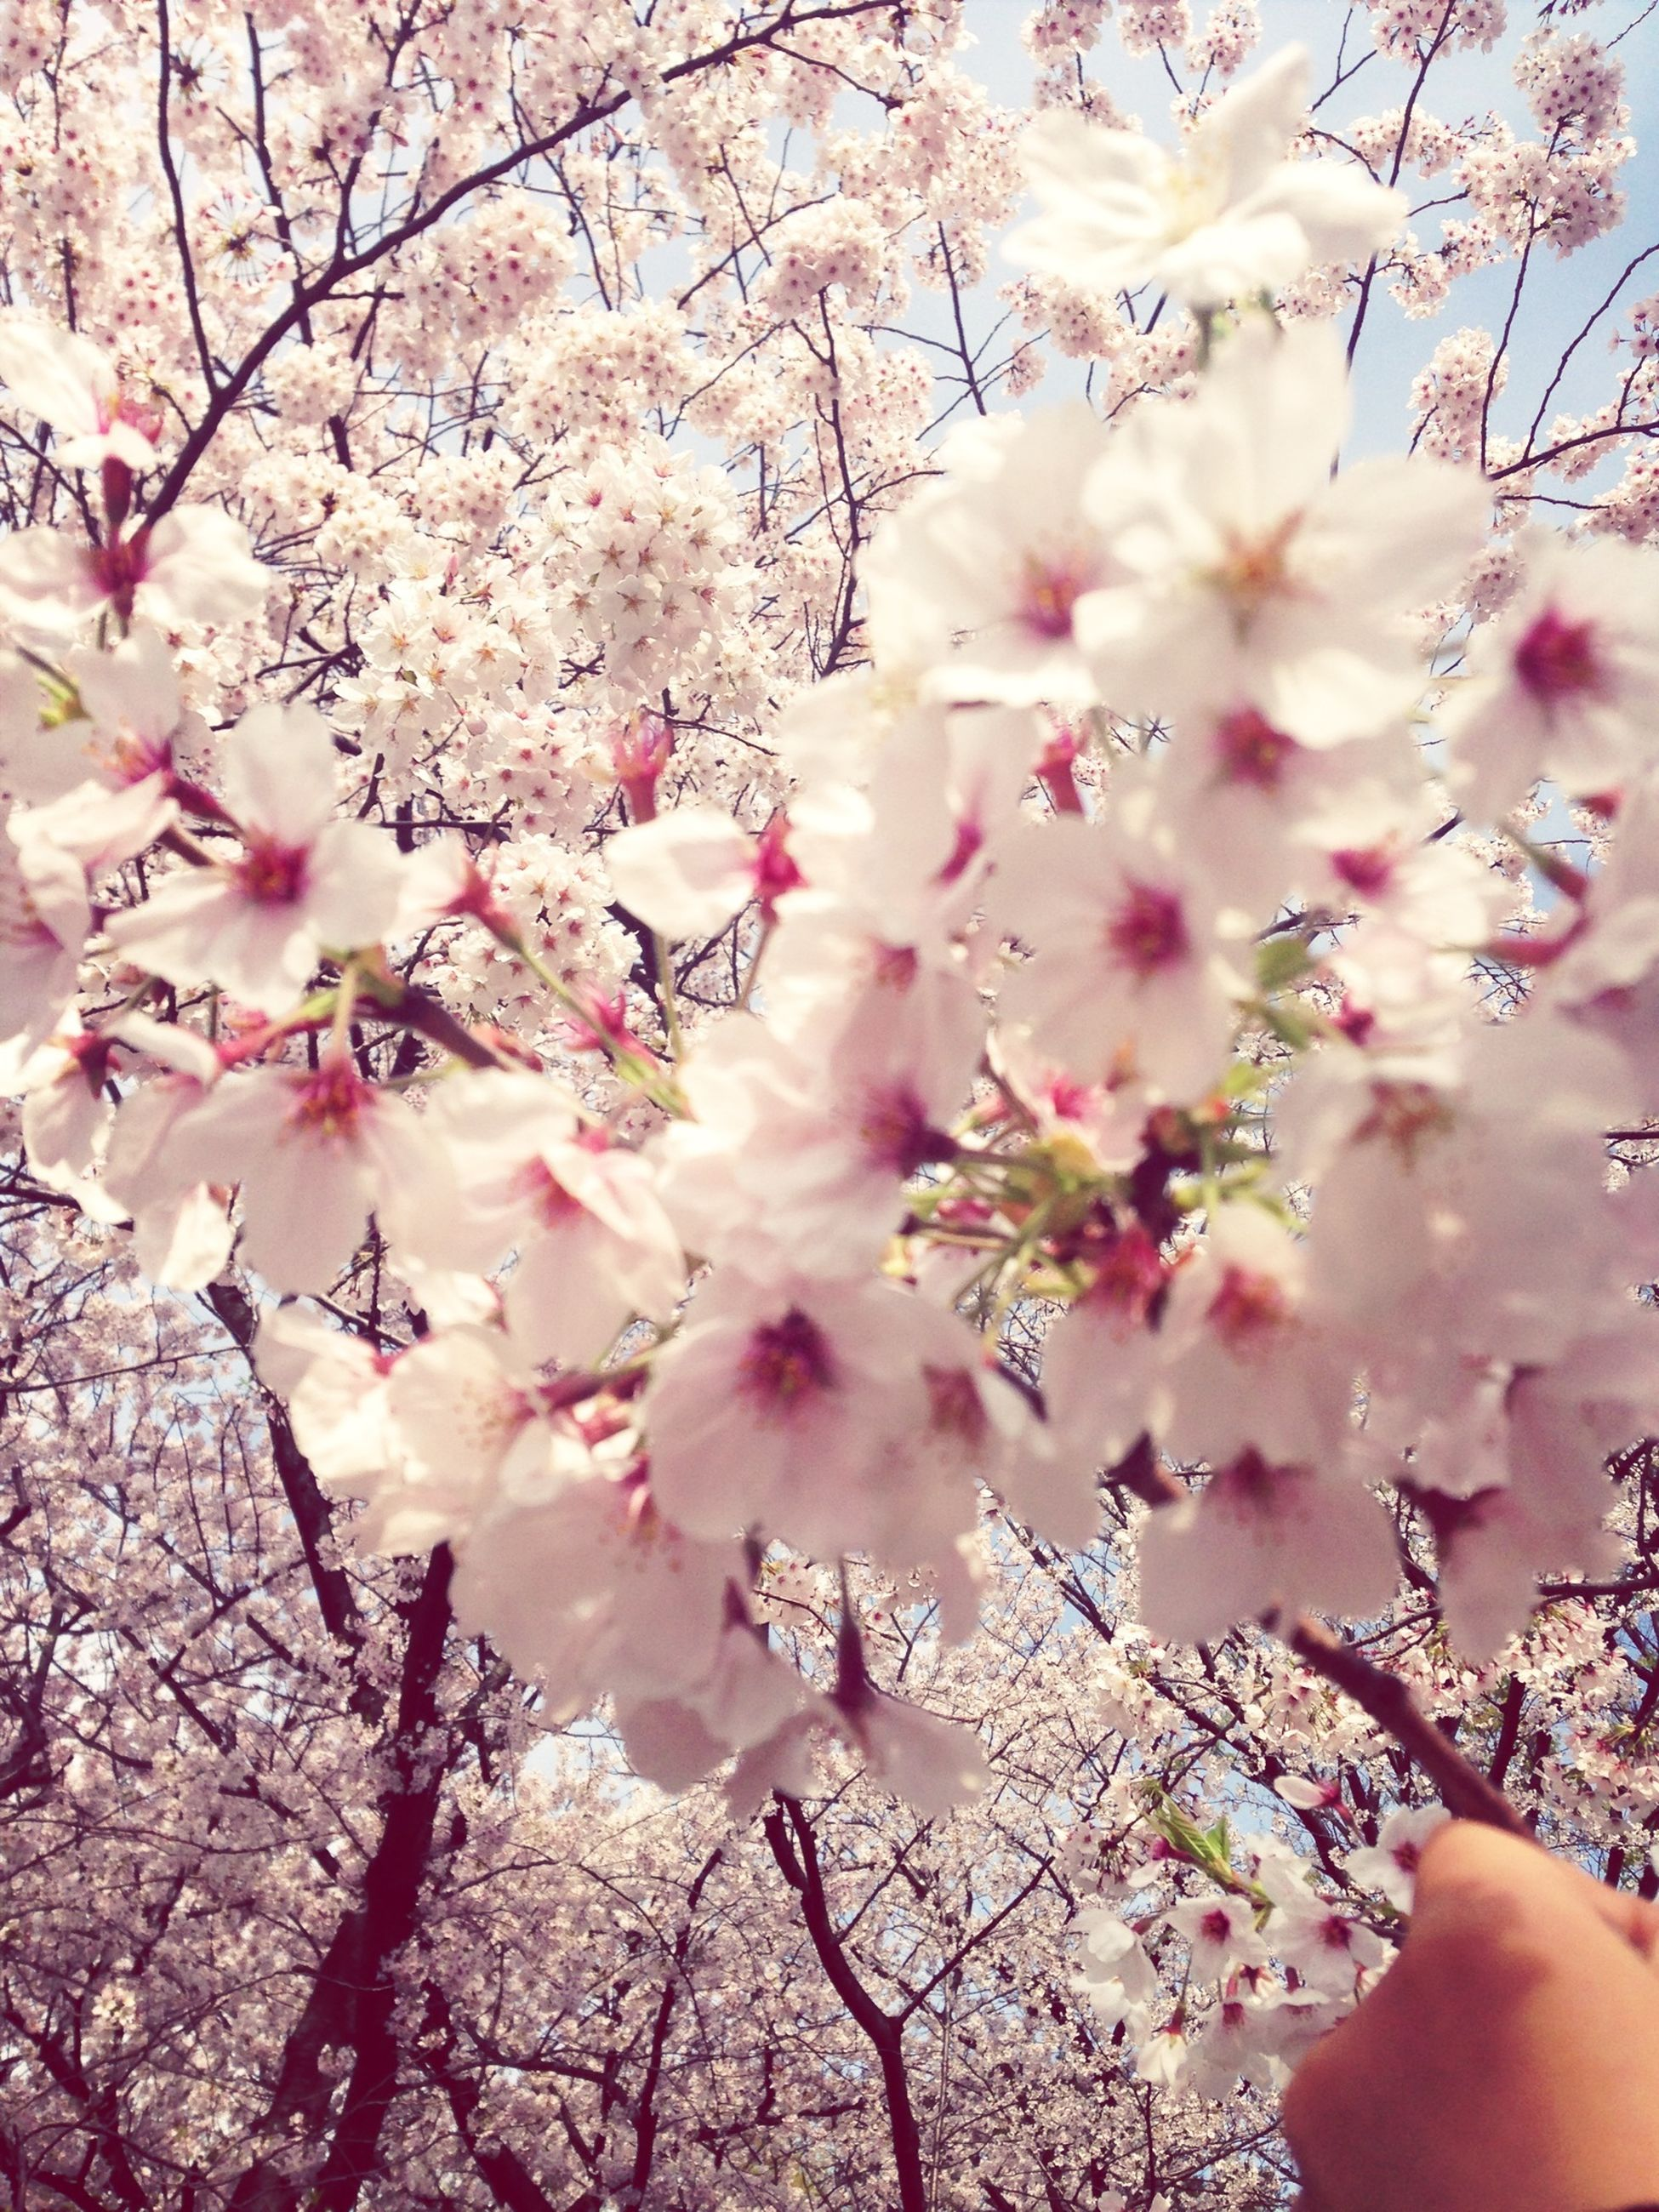 flower, tree, branch, freshness, pink color, fragility, growth, cherry blossom, beauty in nature, blossom, nature, cherry tree, low angle view, petal, pink, springtime, day, in bloom, outdoors, part of